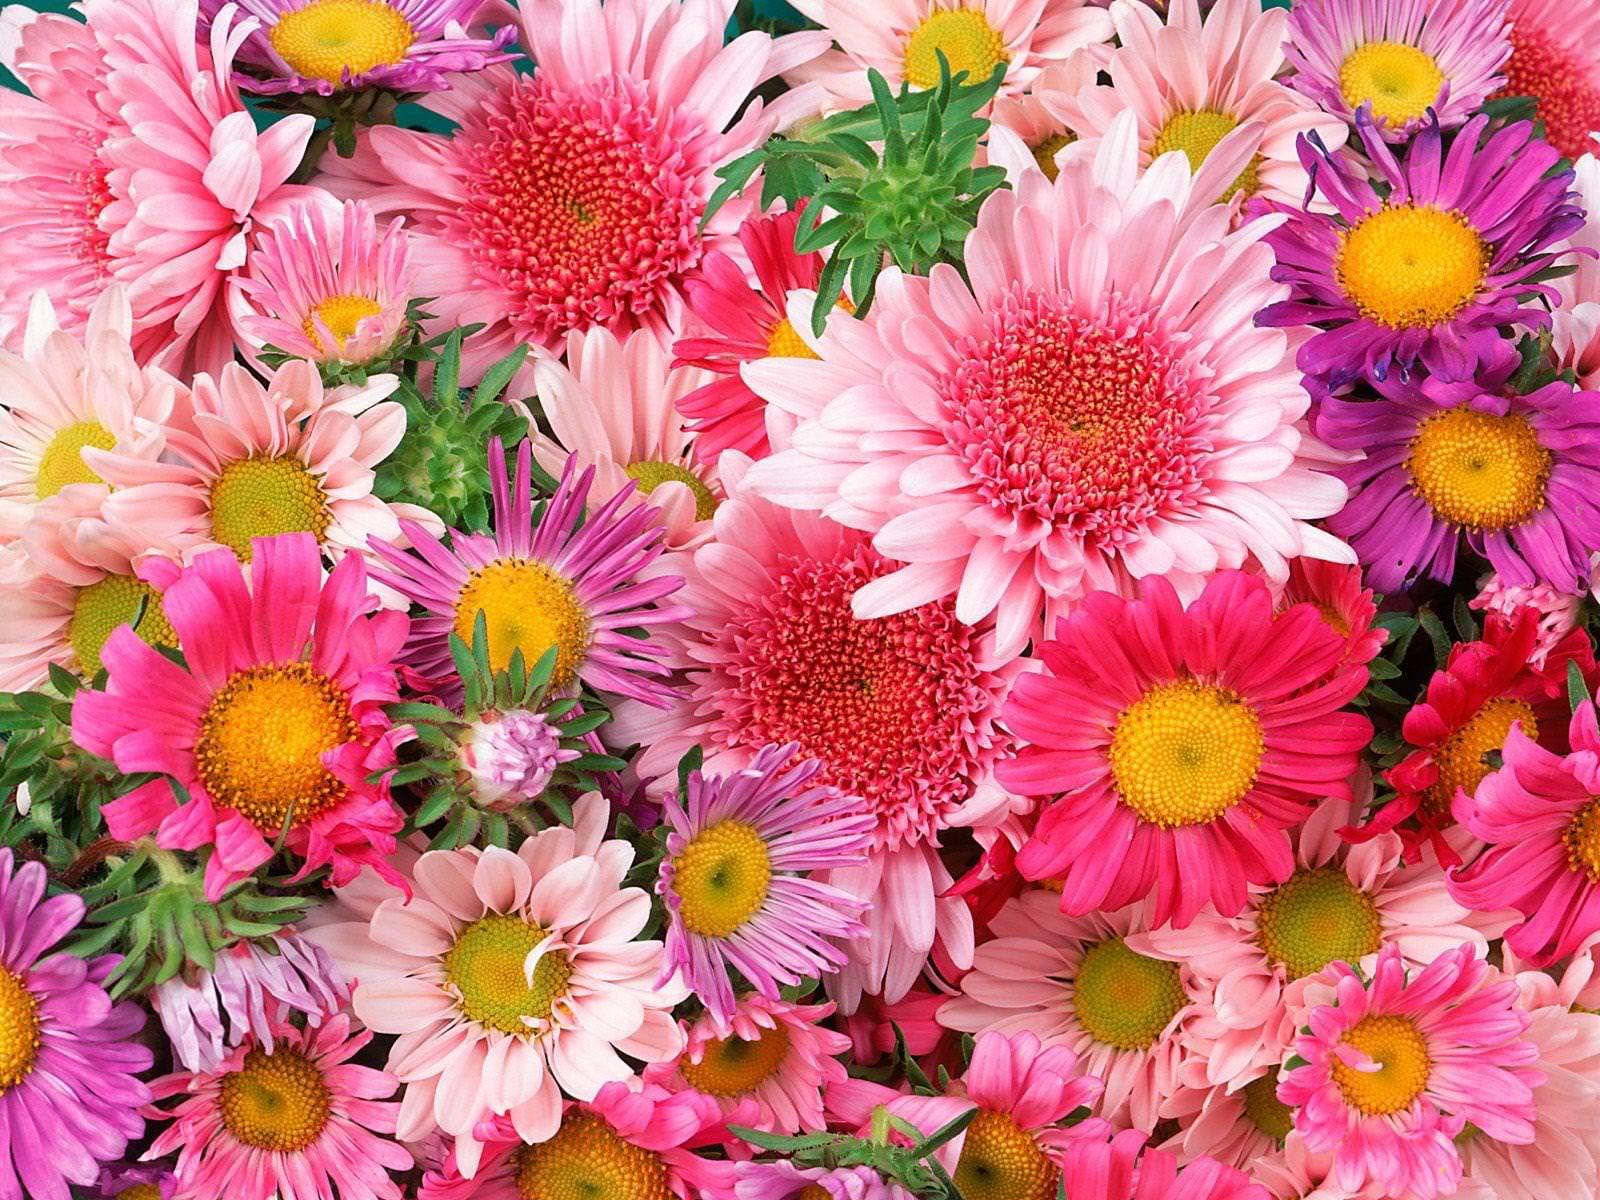 Gerbera Pink and Violet Daisy Flowers Background